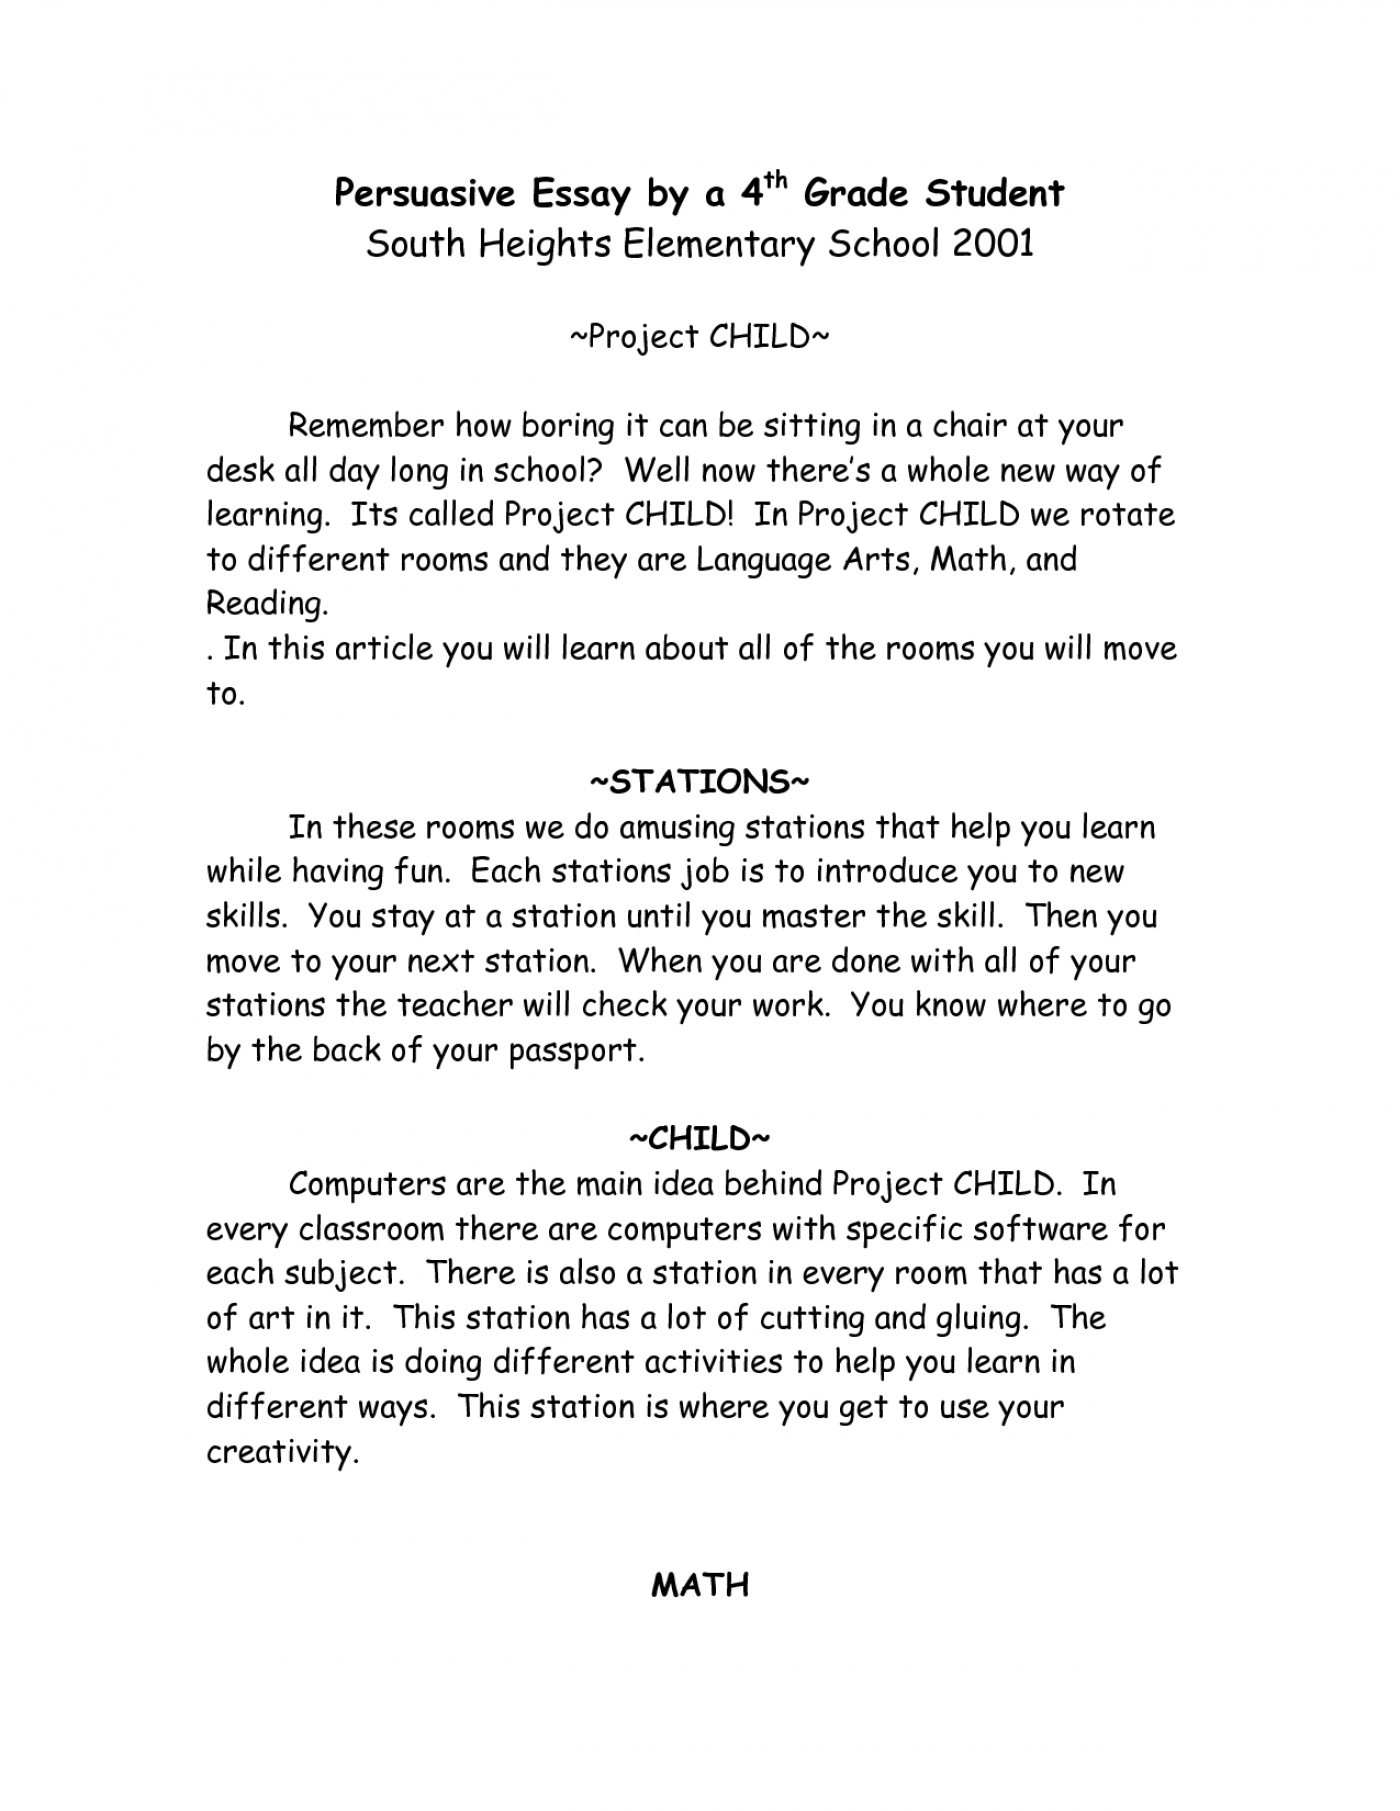 014 How To Start An Essay 2nmmxqusgx Amazing With A Hook Quote Analysis On Book 1400